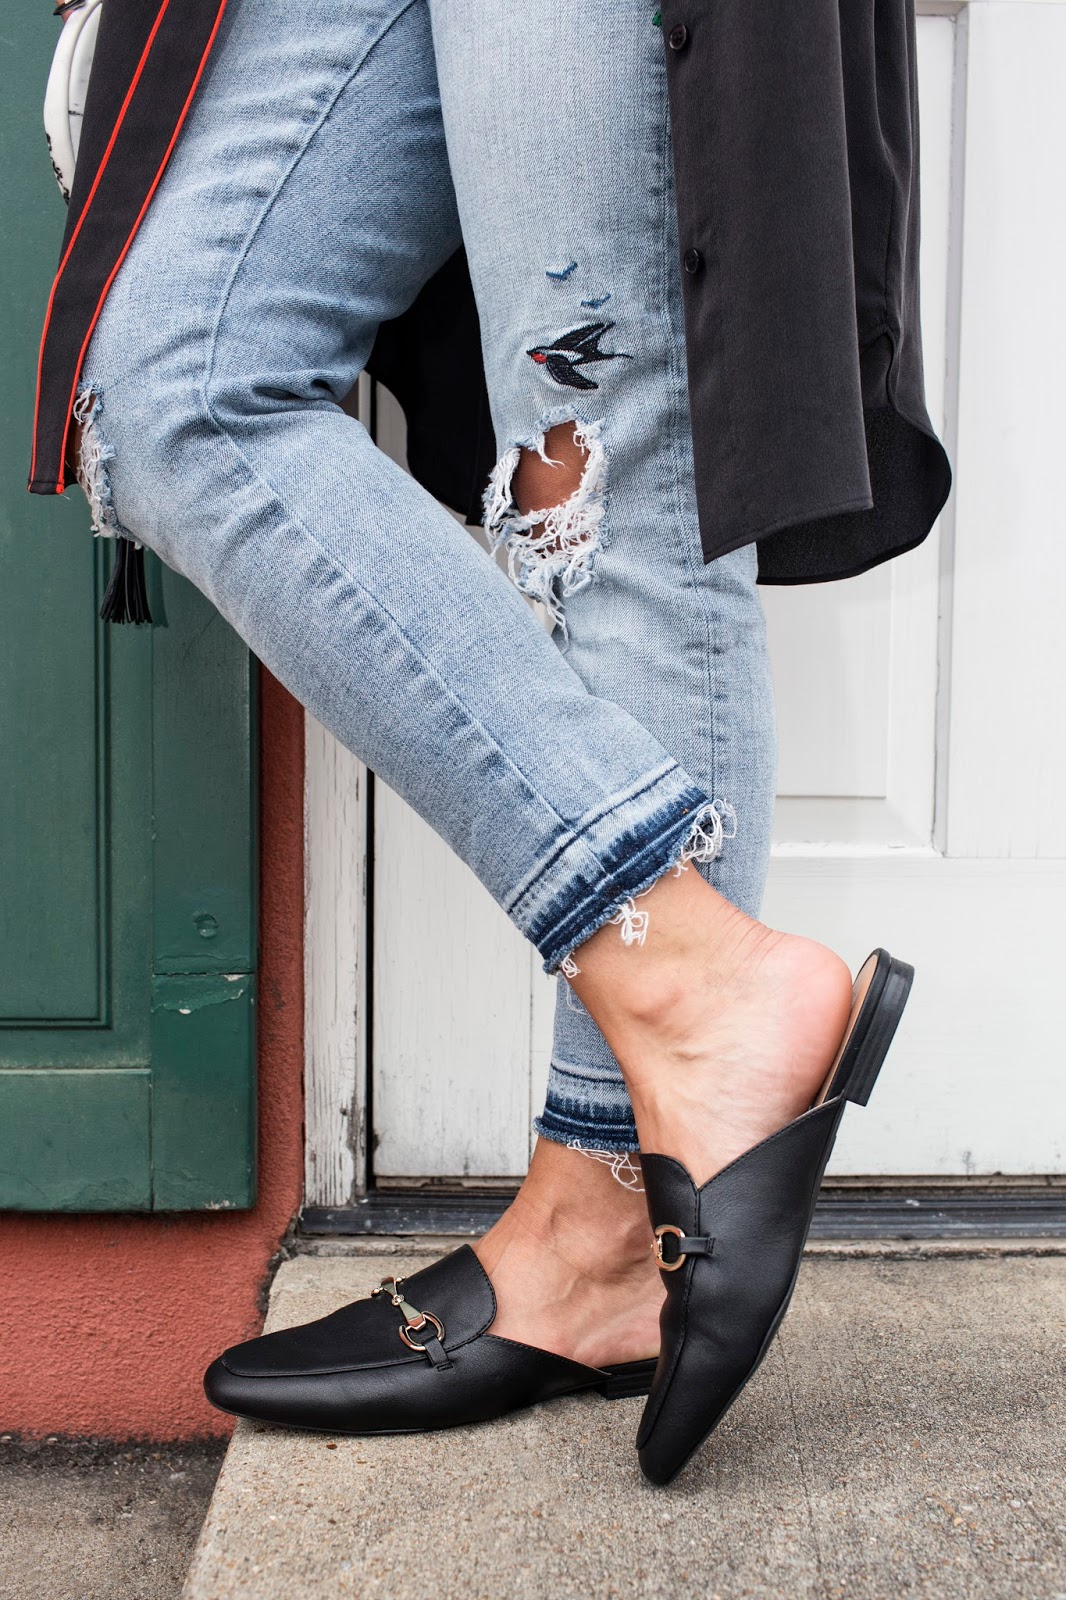 65d3039e99 You can t go wrong with jeans and a tee because it s so basic and  experimenting with your shoes is an easy way to try a bold trend.